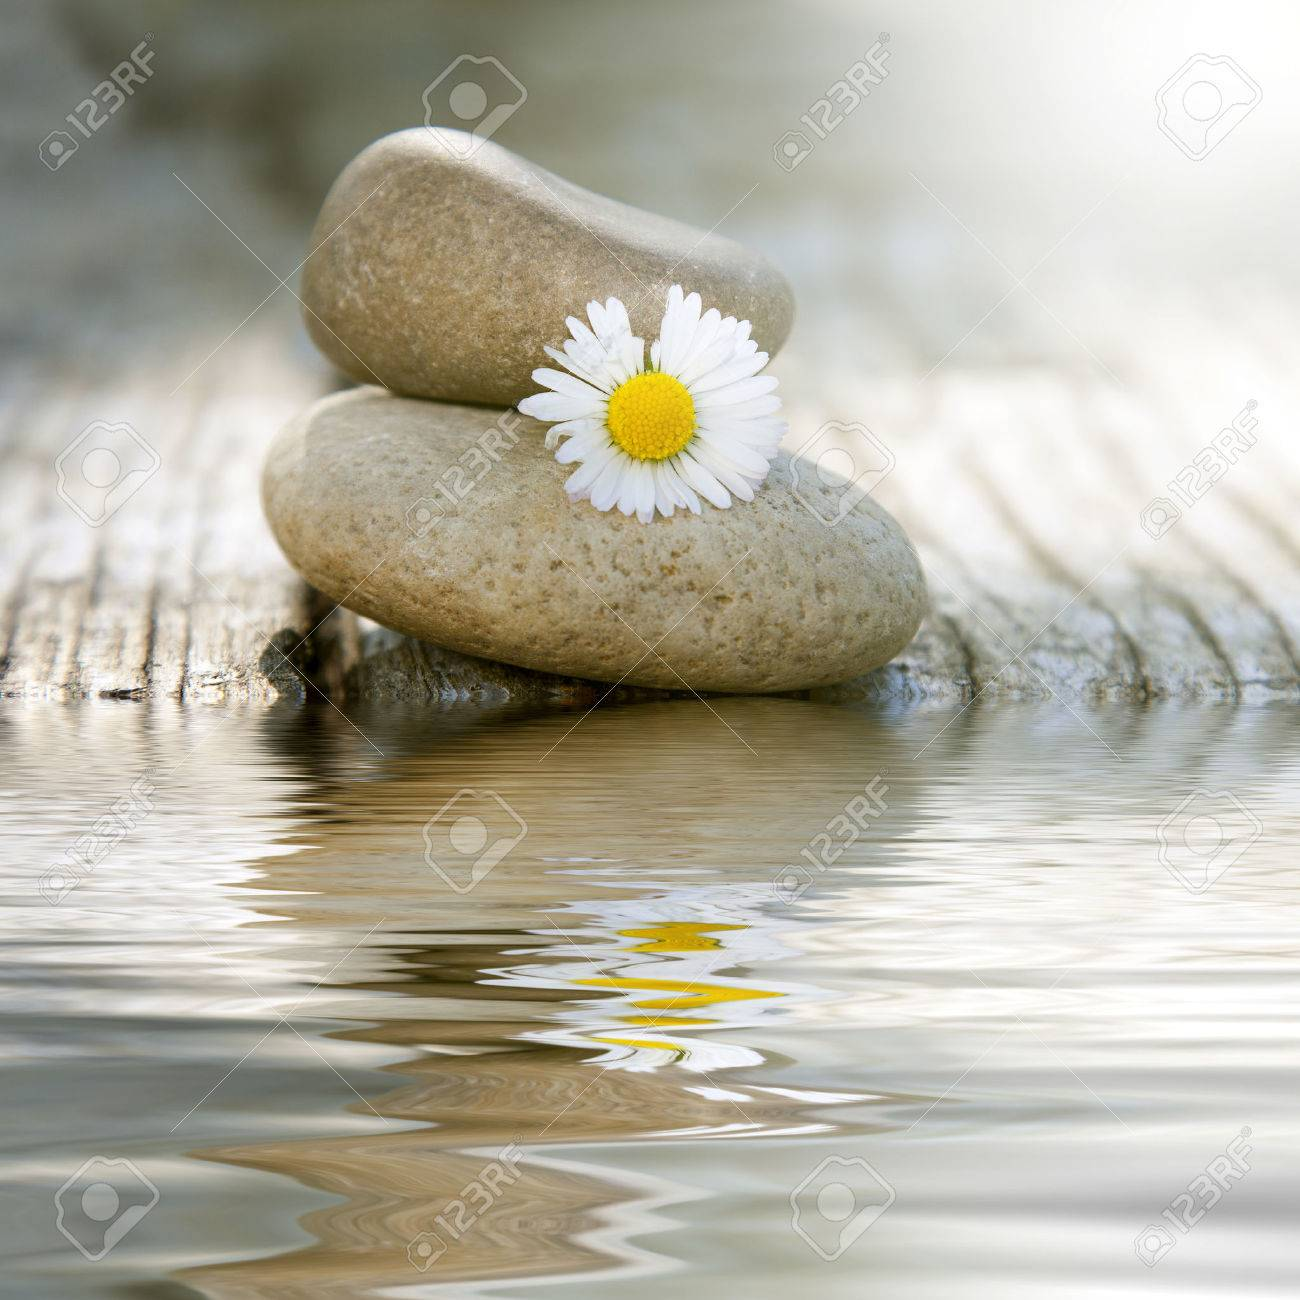 stones in balance with daisy and reflection in water - 54967942